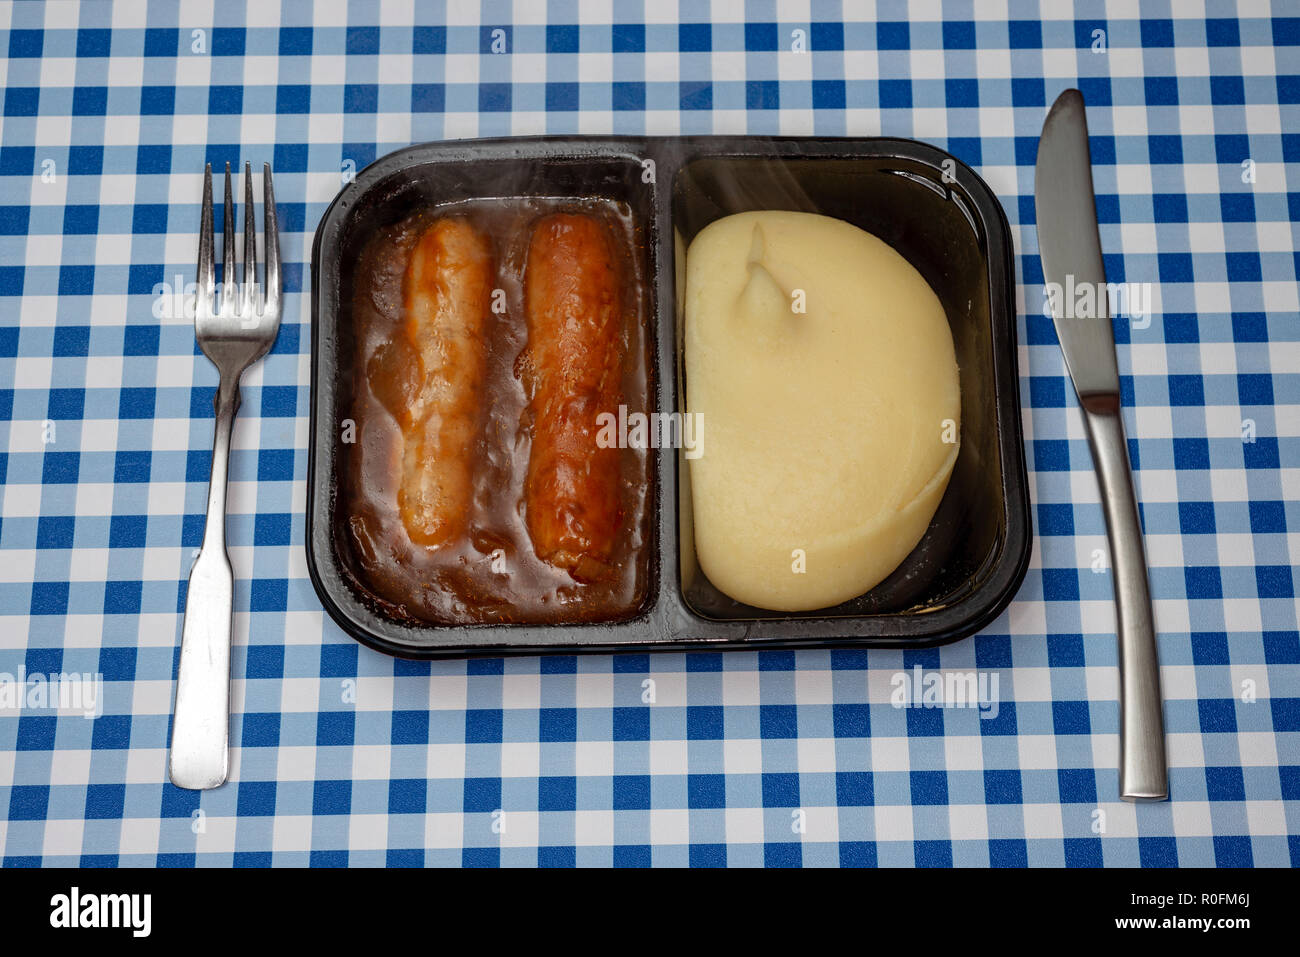 Sausages and mashed potato TV dinner Stock Photo